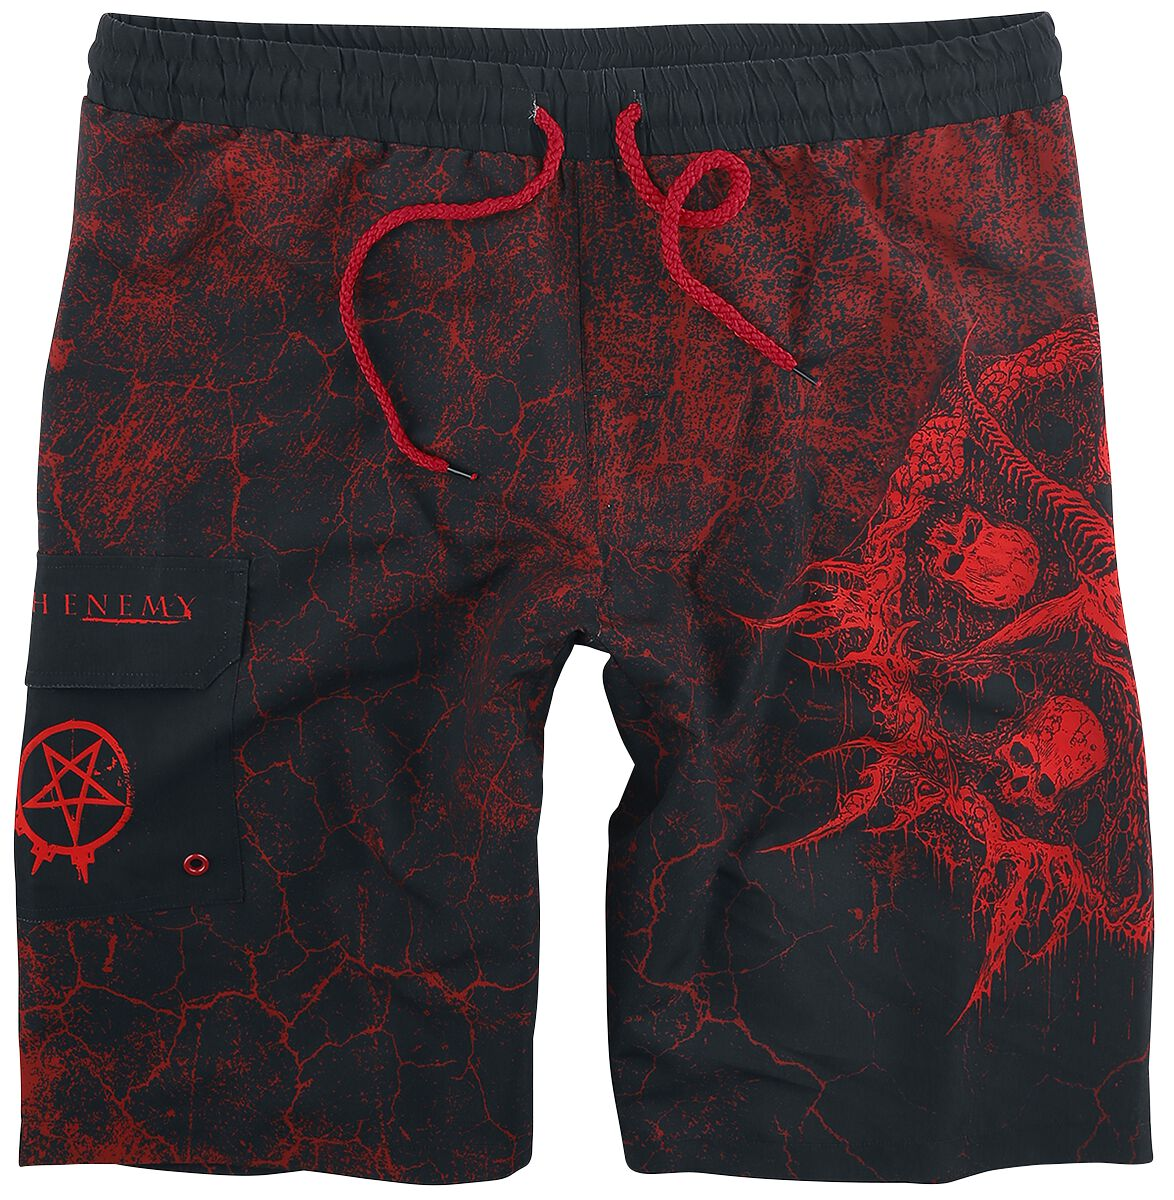 Image of Arch Enemy EMP Signature Collection Badeshorts multicolor